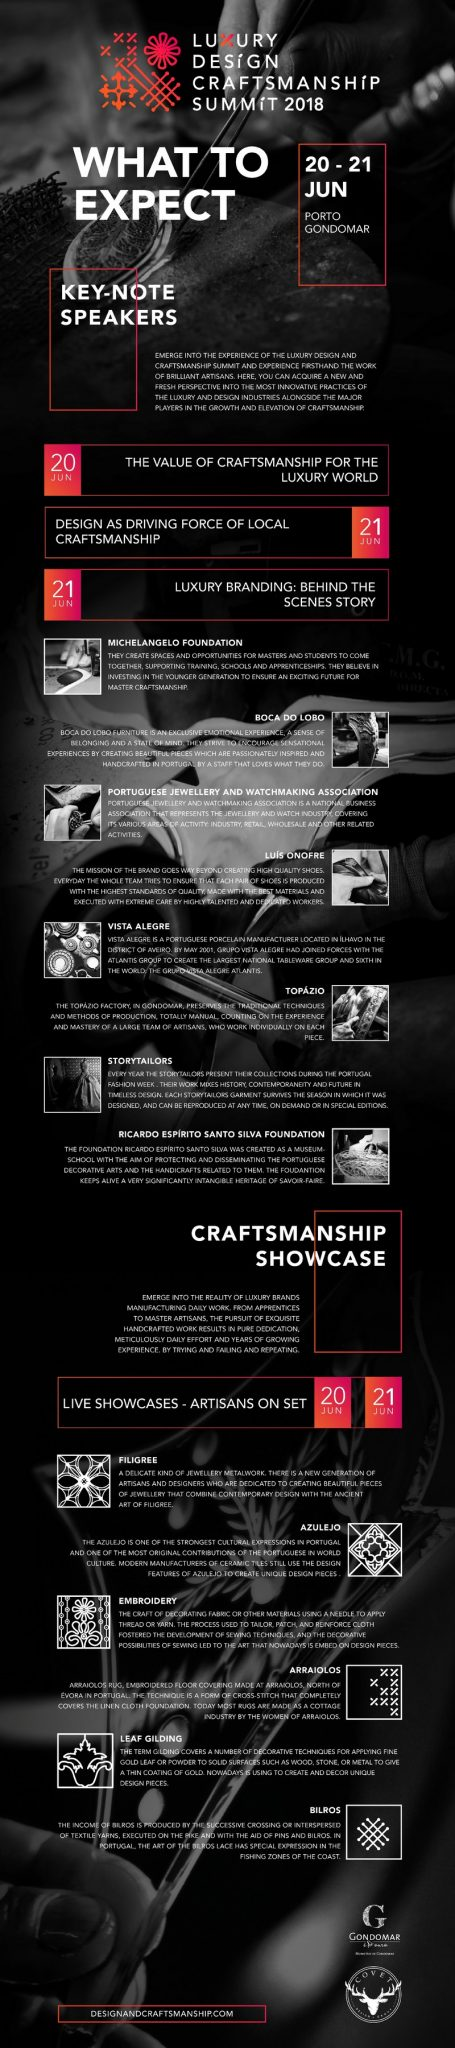 craftsmanship summit Get to Know the Arts Of The Luxury Design & Craftsmanship Summit 2018 Get to Know the Arts Of The Luxury Design Craftsmanship Summit 2018 14